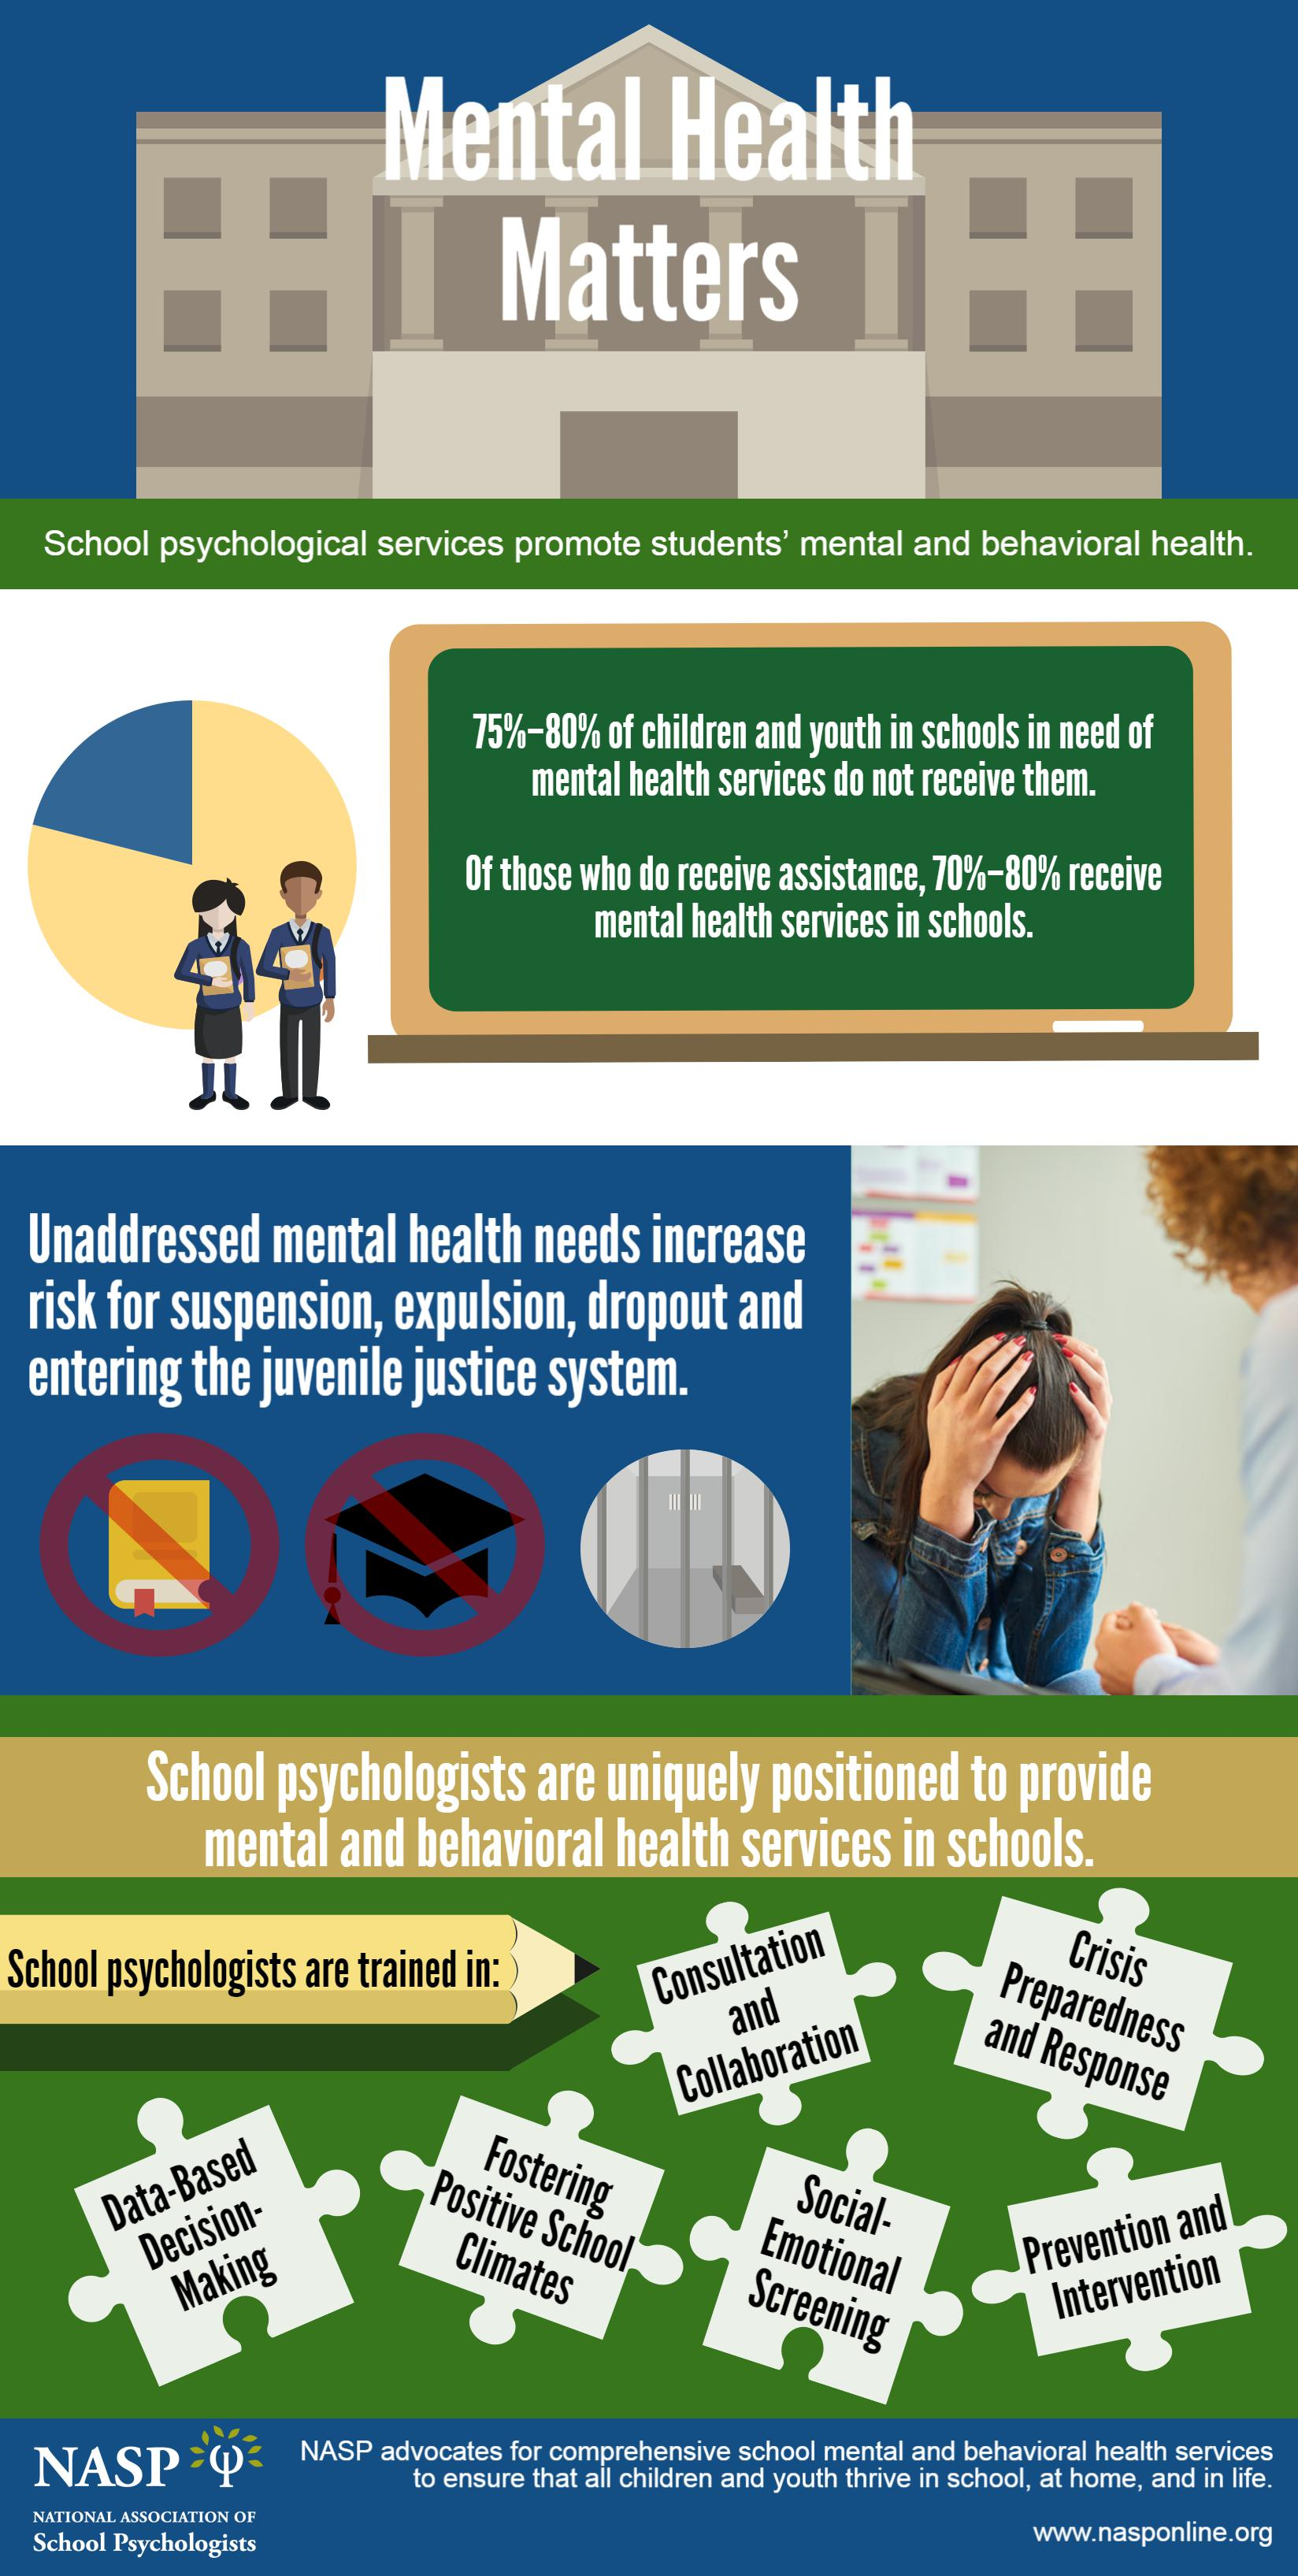 psychology and mental health services Provides strategies, resources, and training in psychological and mental health issues, including coping with tragedy, crisis intervention and prevention, school psychology and suicide prevention.